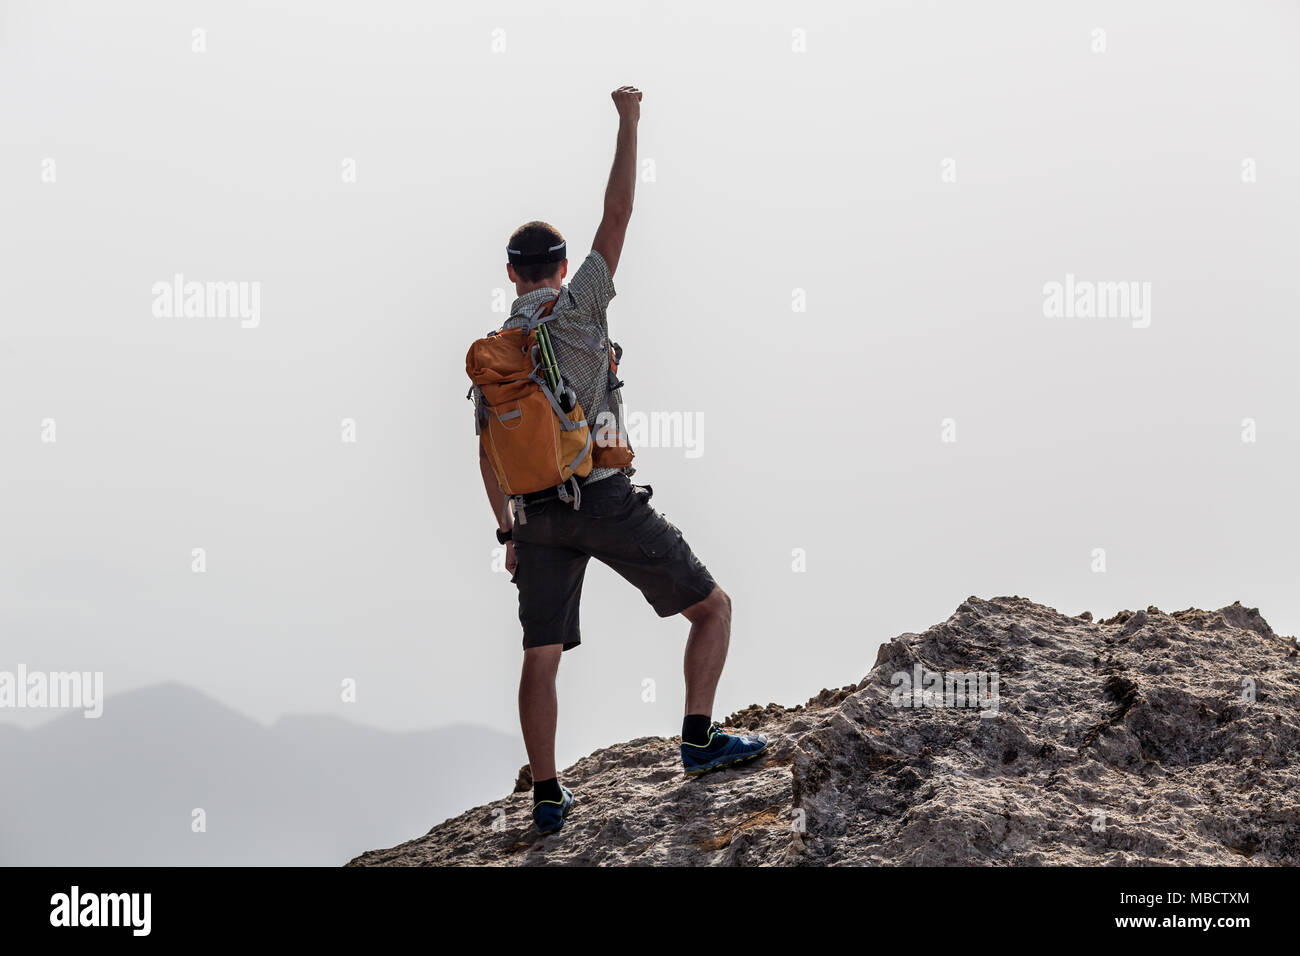 Success and achievement business concept with man celebrating with hand up, arm raised outstretched looking at inspirational landscape view, Greece. - Stock Image